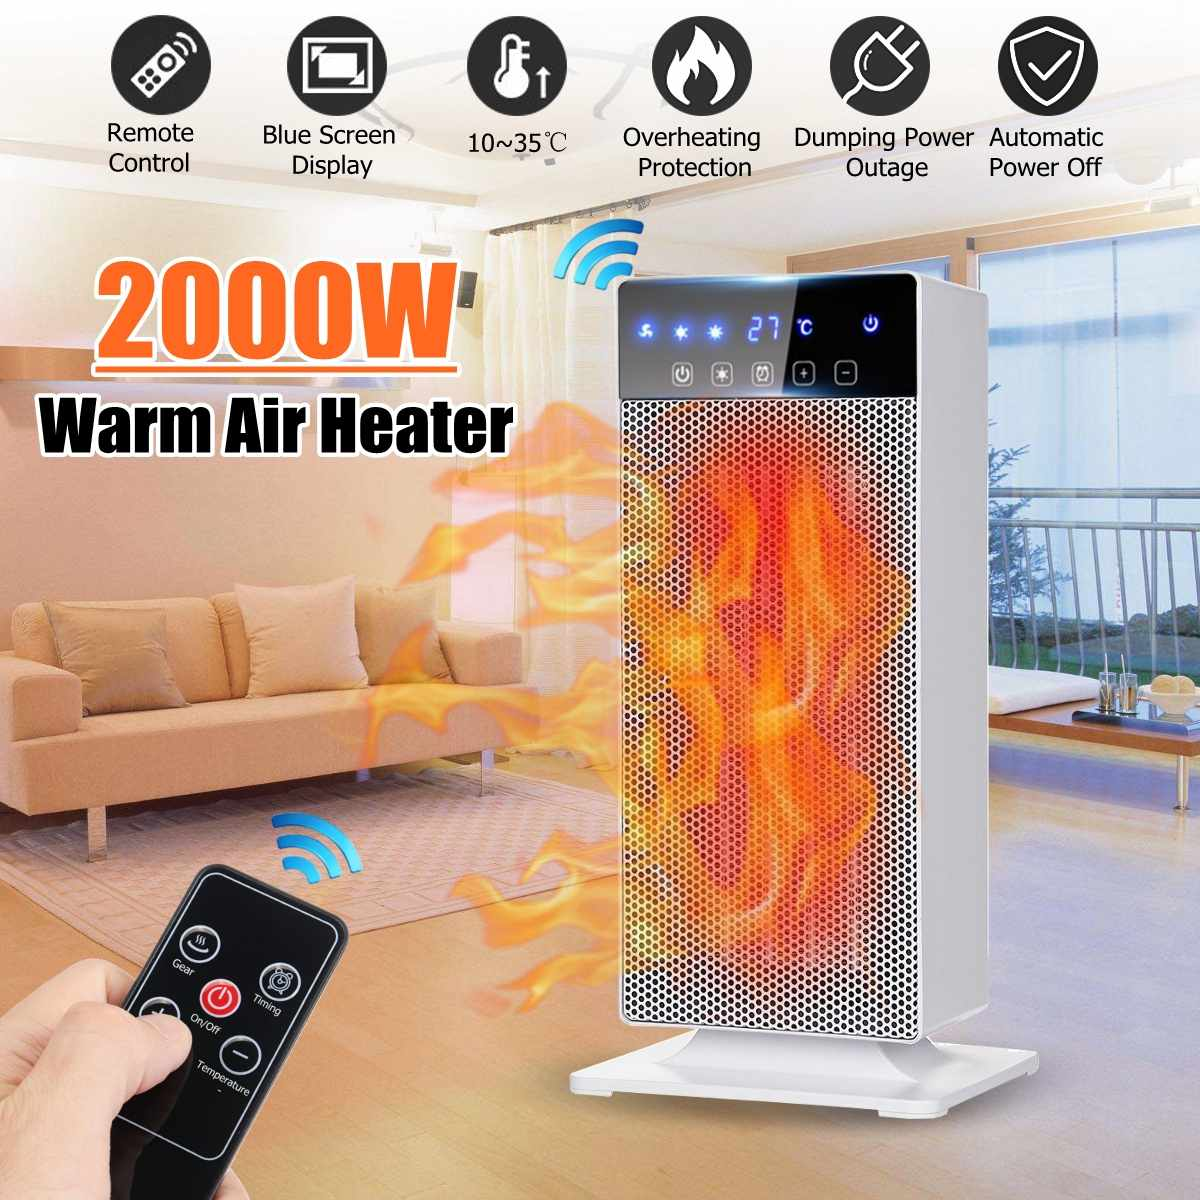 2000W PTC Vertical Electric Warm Air Heater fan Remote control/Mechanical models with LED Digital Display For Home Office Use